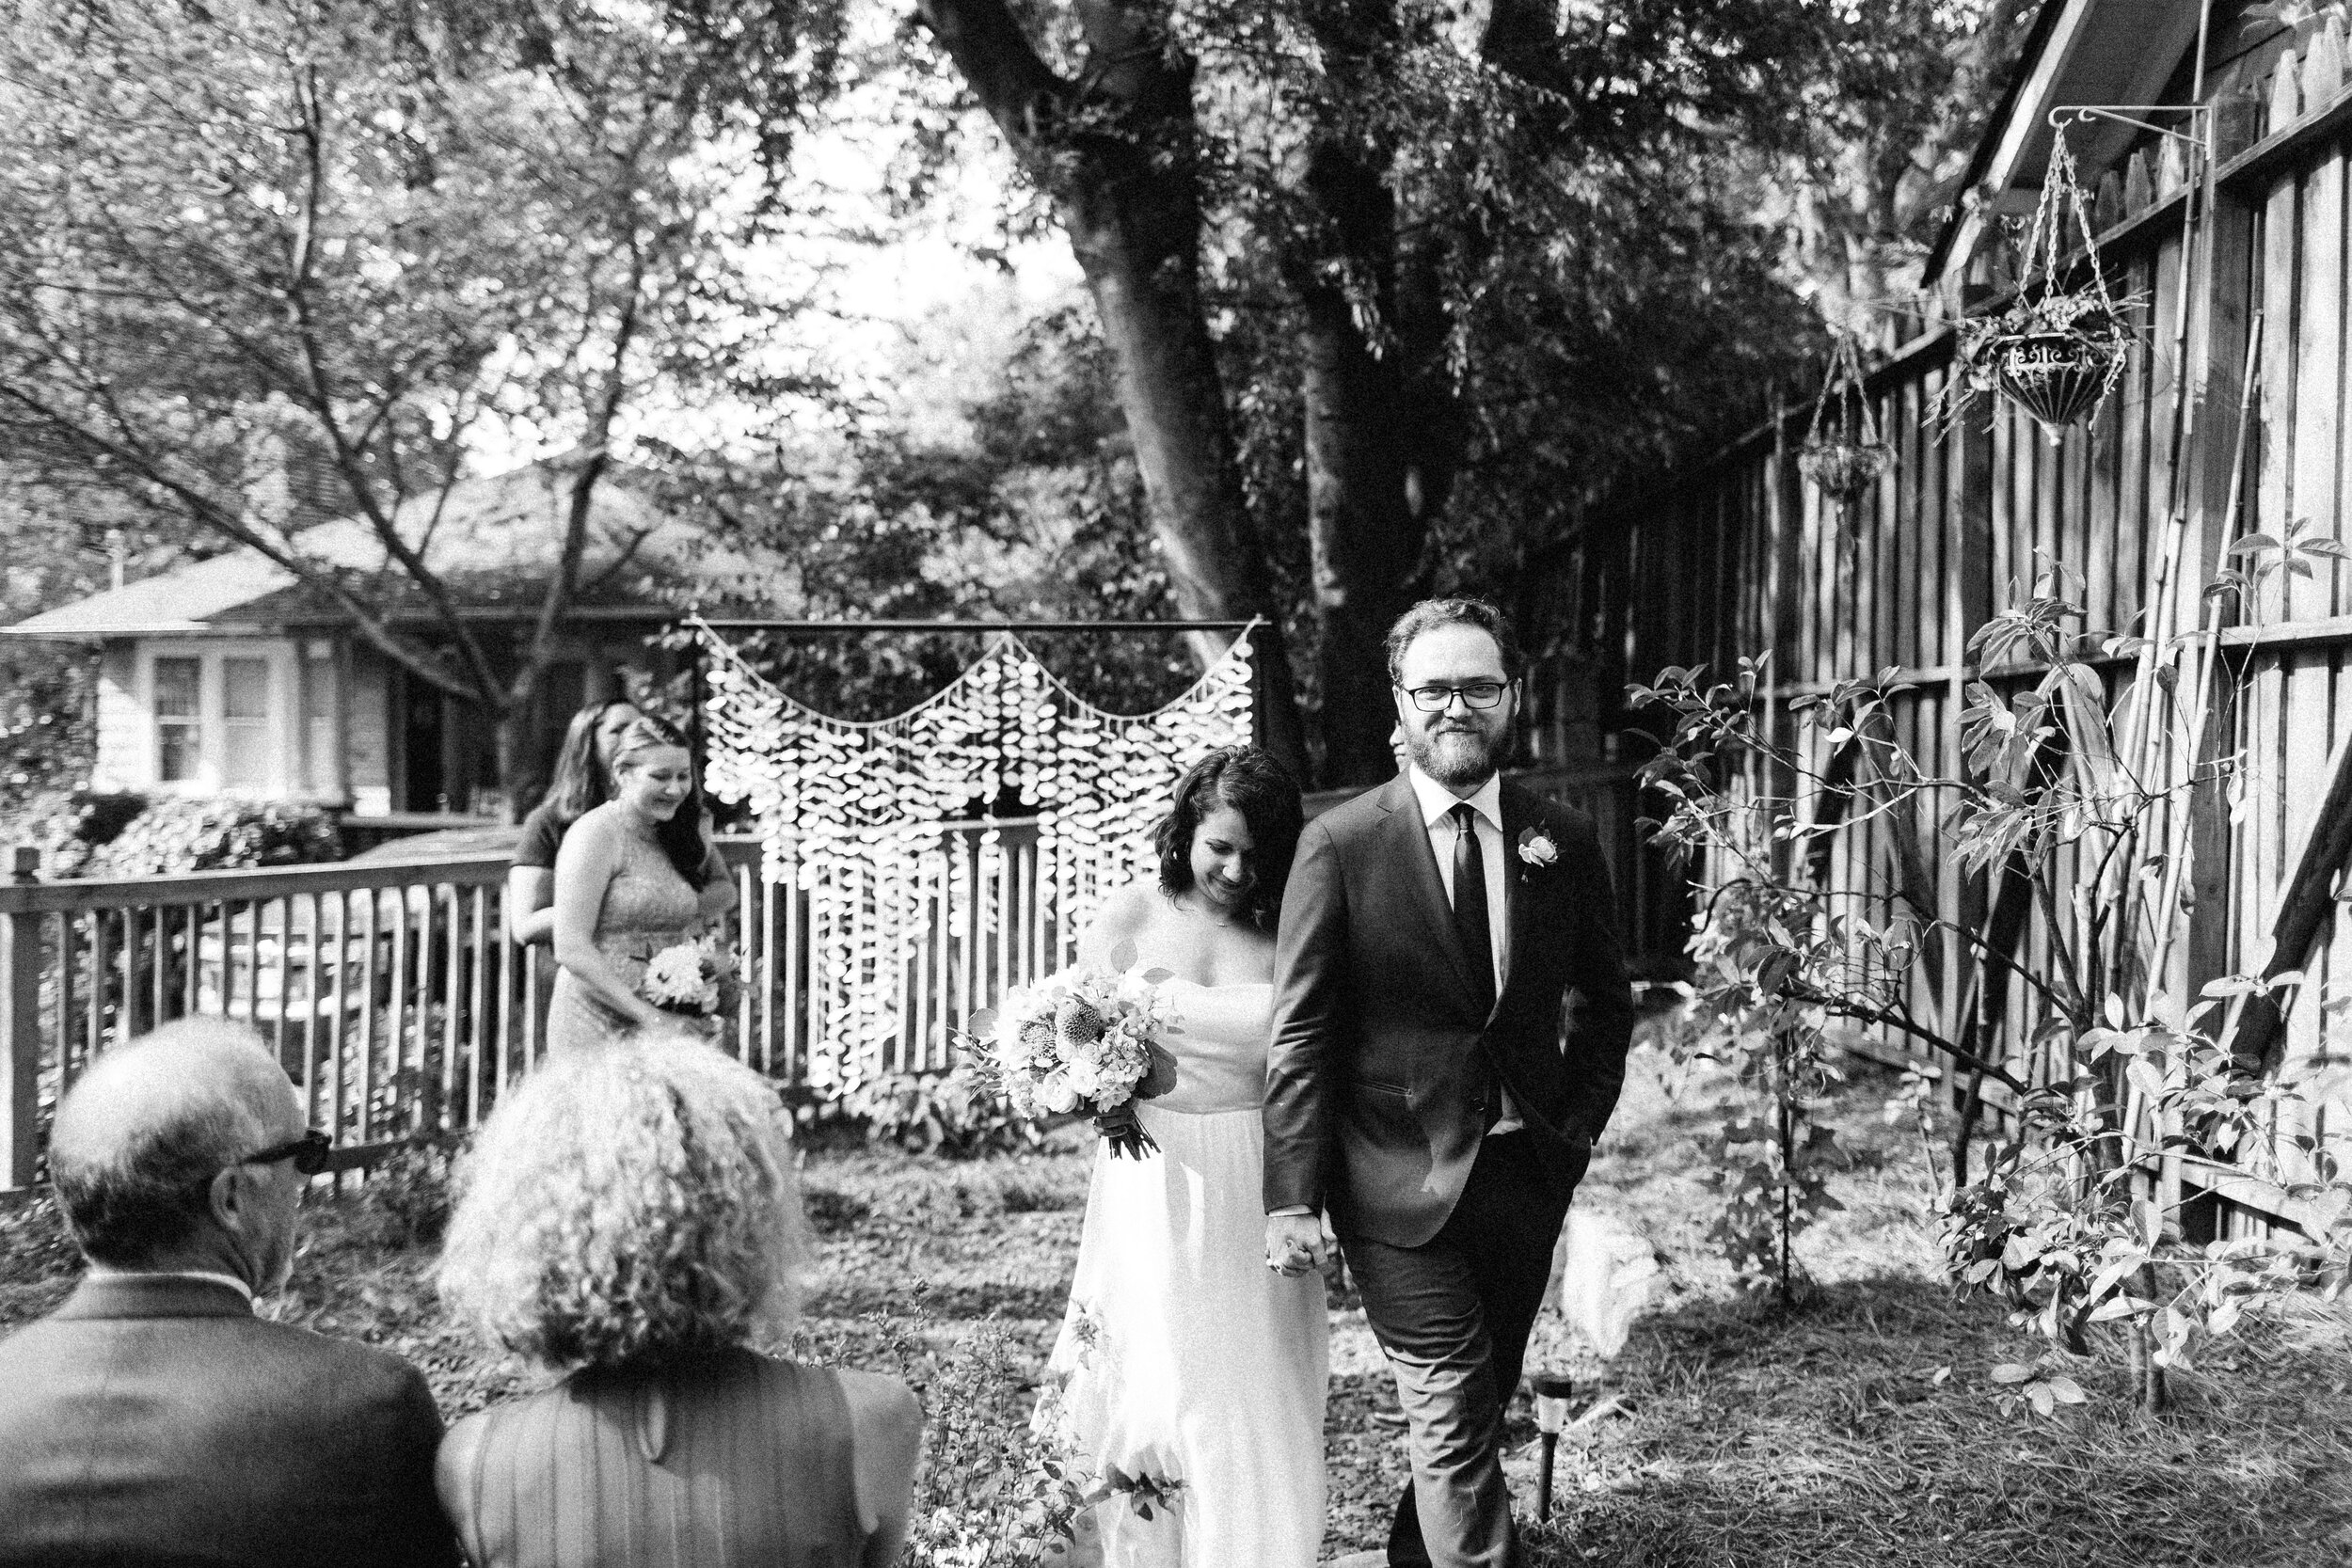 backyard_sun_in_my_belly_wedding_diy_at_home_atlanta_inman_park_arty_photographer_1421.jpg